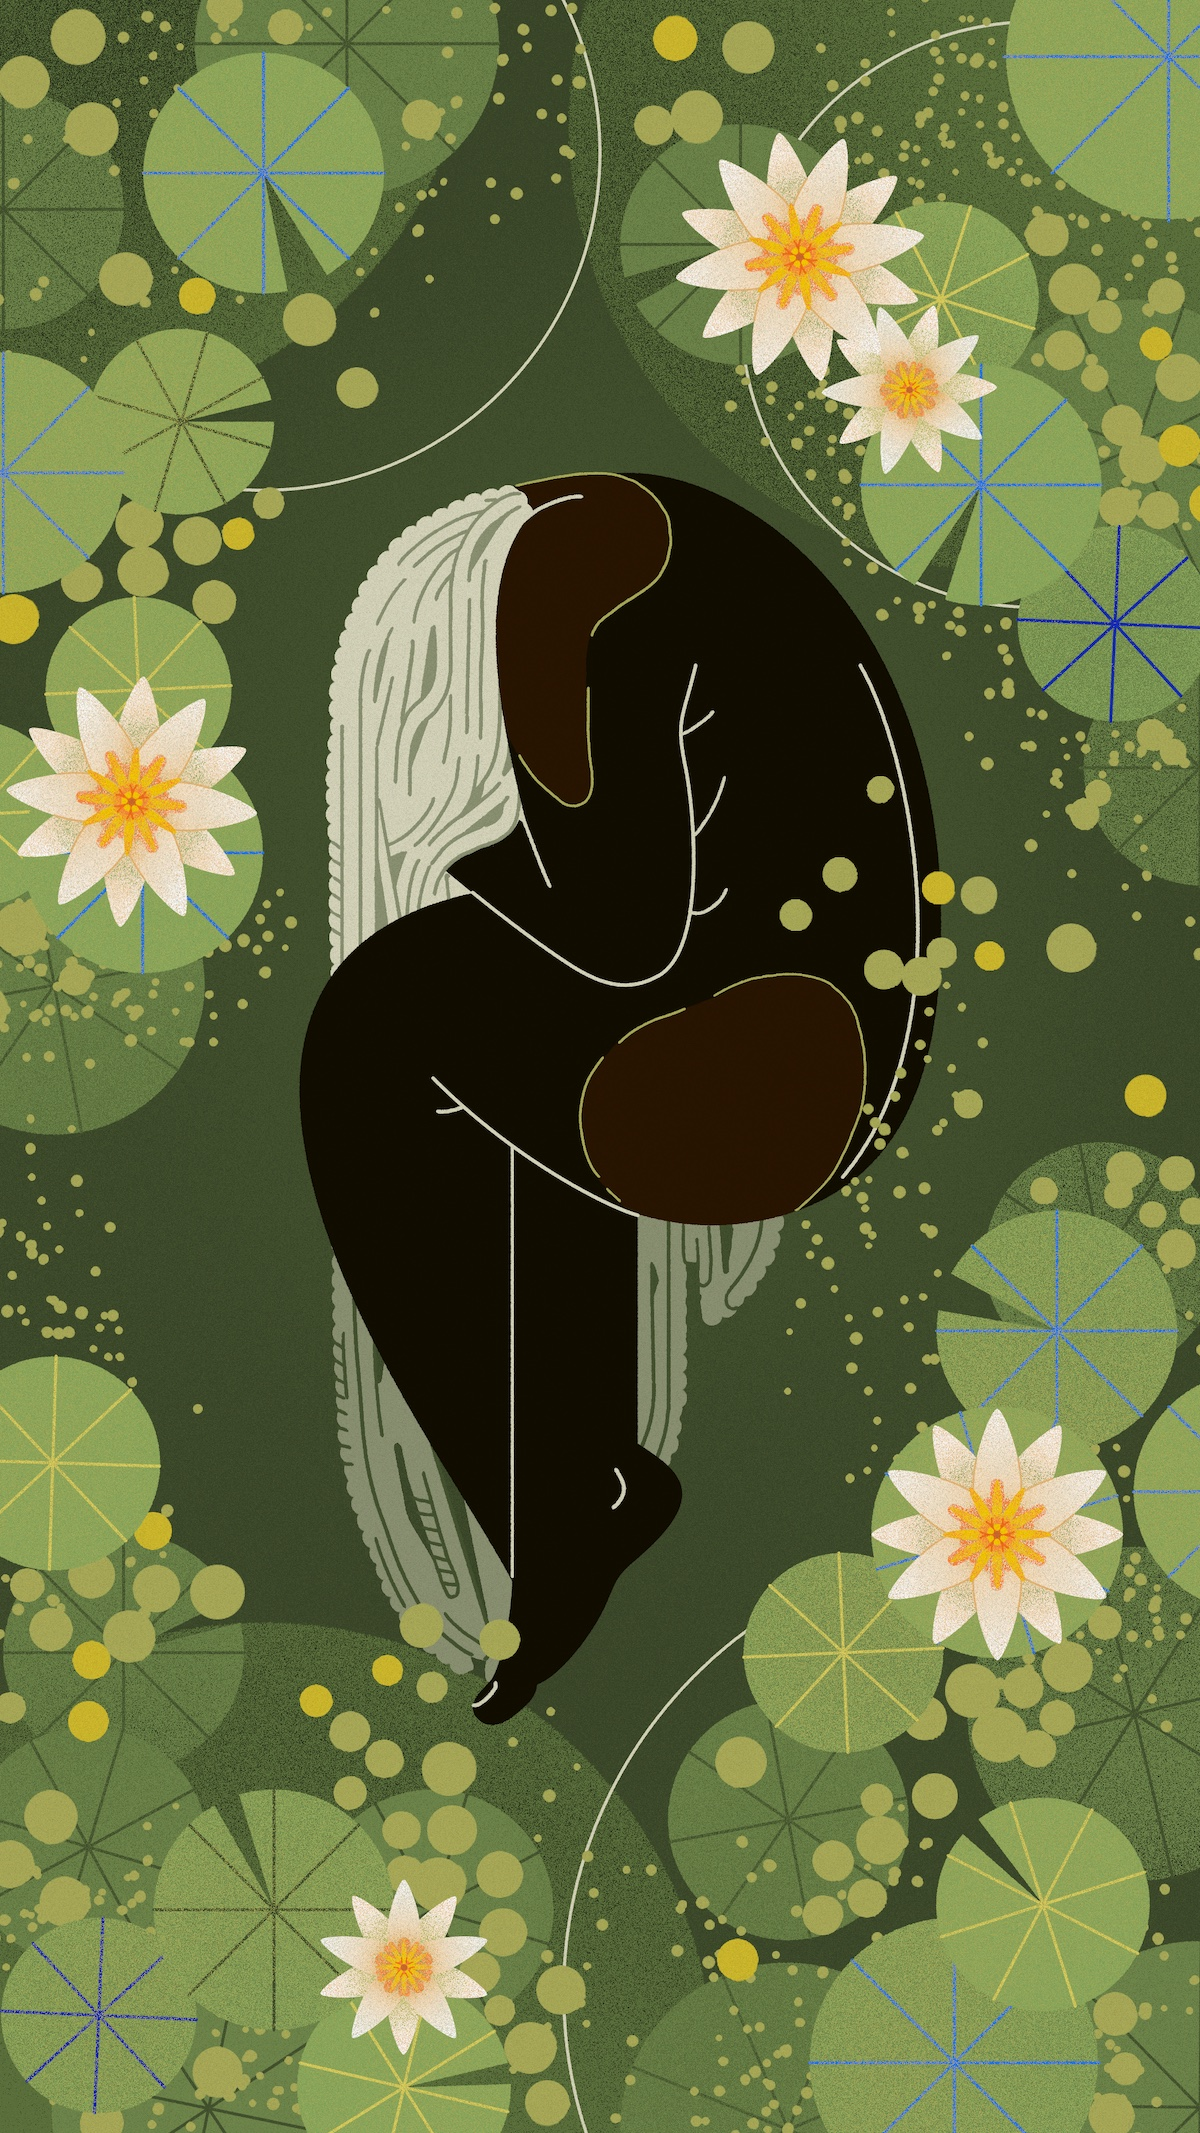 An illustration of a female figure lying in a lily pond.